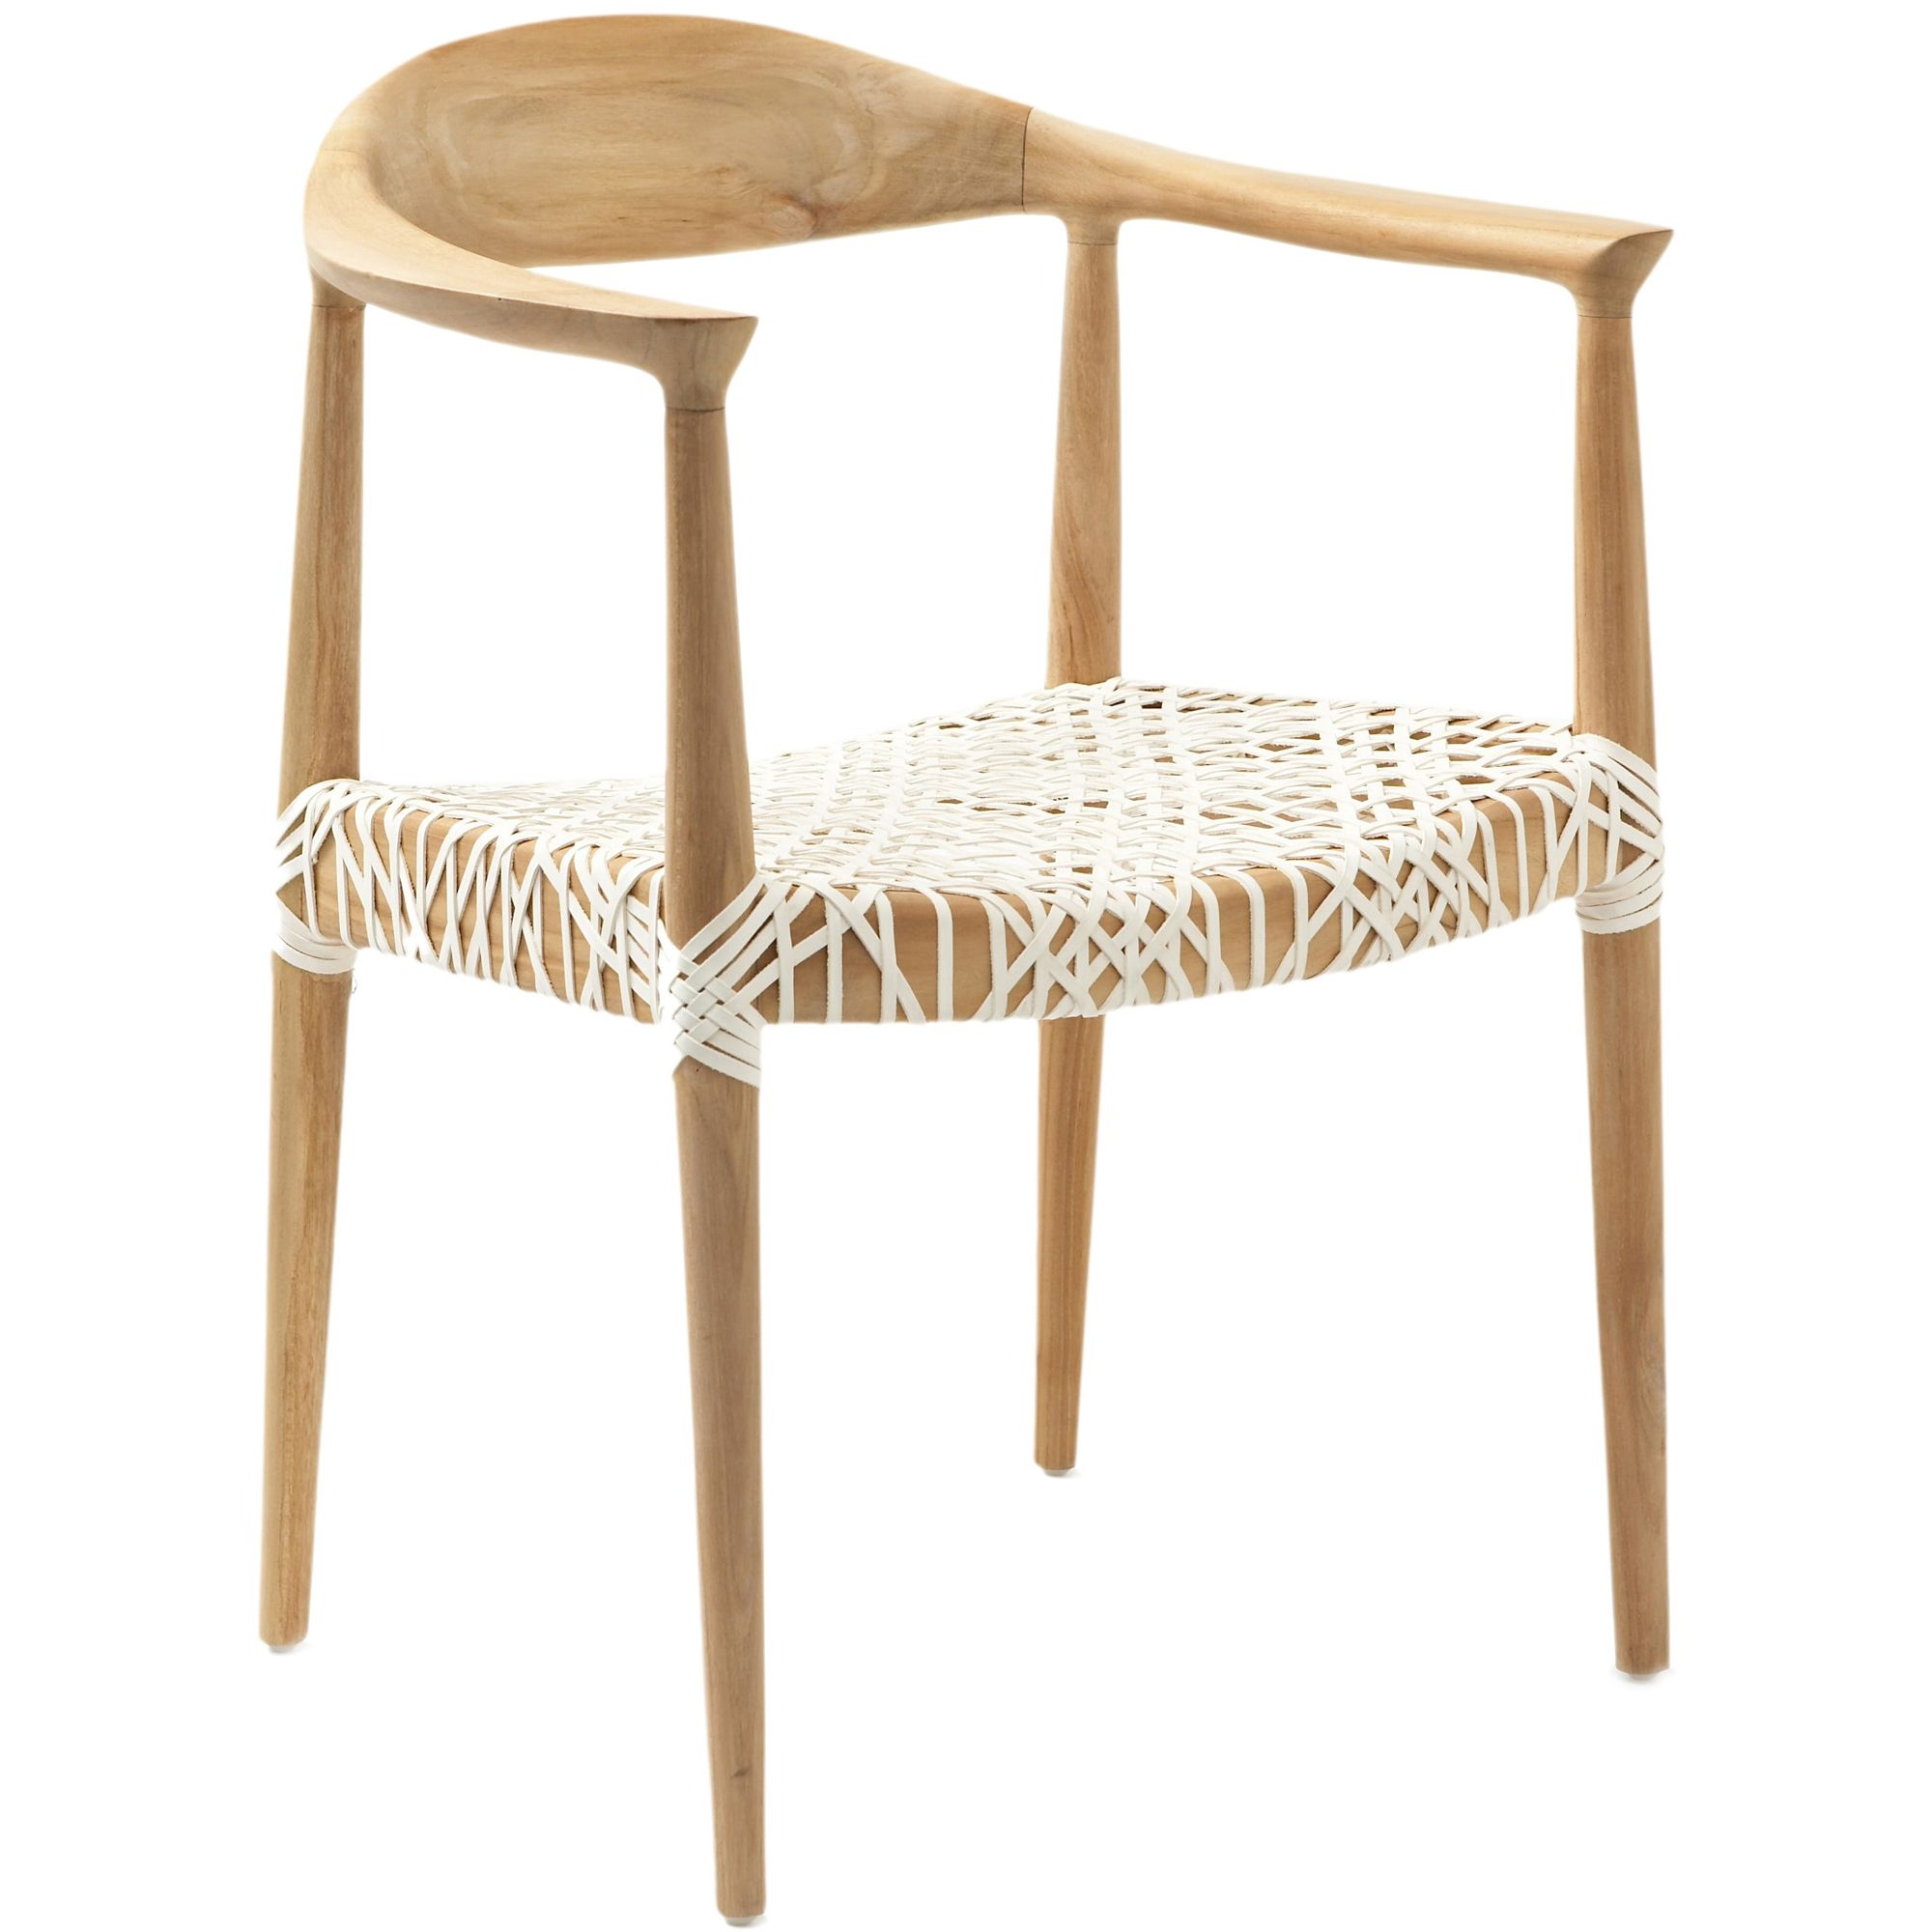 Reminiscent Of Mid Century Modern Chairs With Blond Wood And Spindle Legs,  The Retro